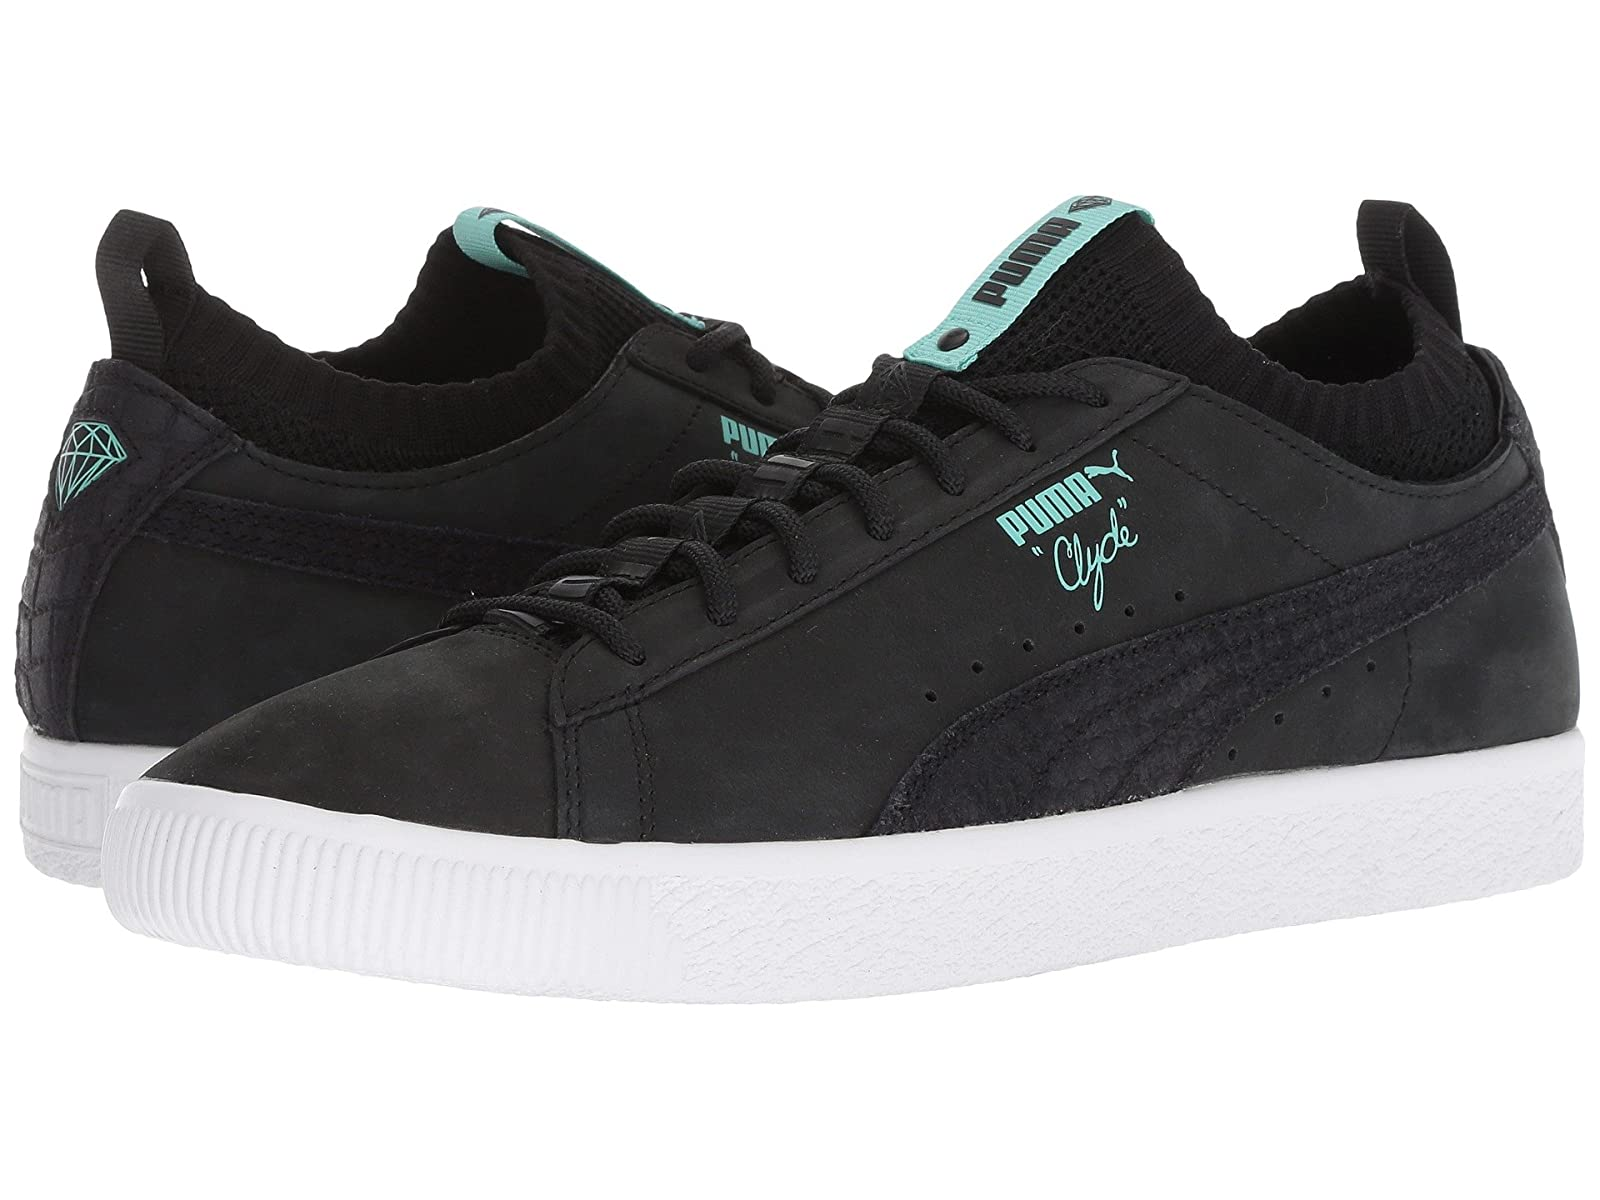 PUMA Clyde Sock Lo DiamondAtmospheric grades have affordable shoes